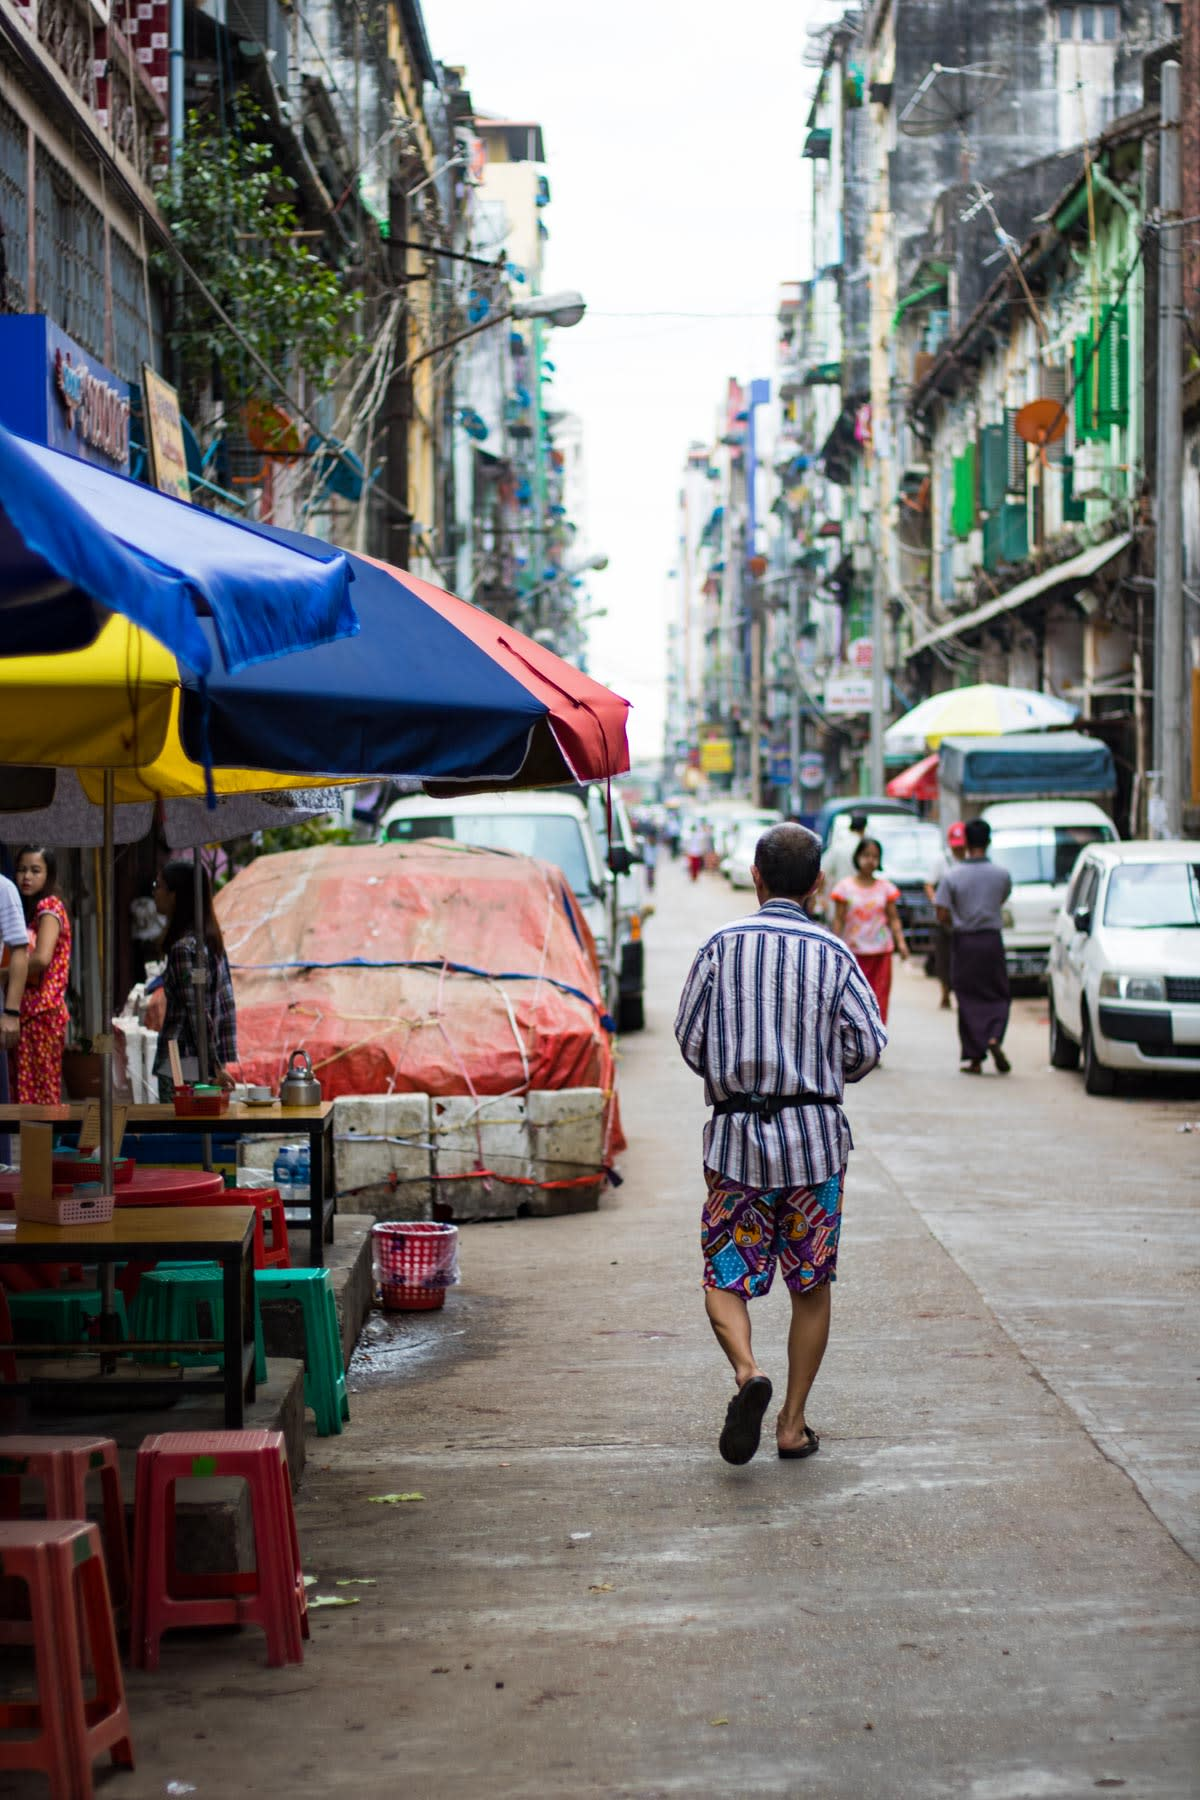 Back of a person in stripes walking down a narrow street